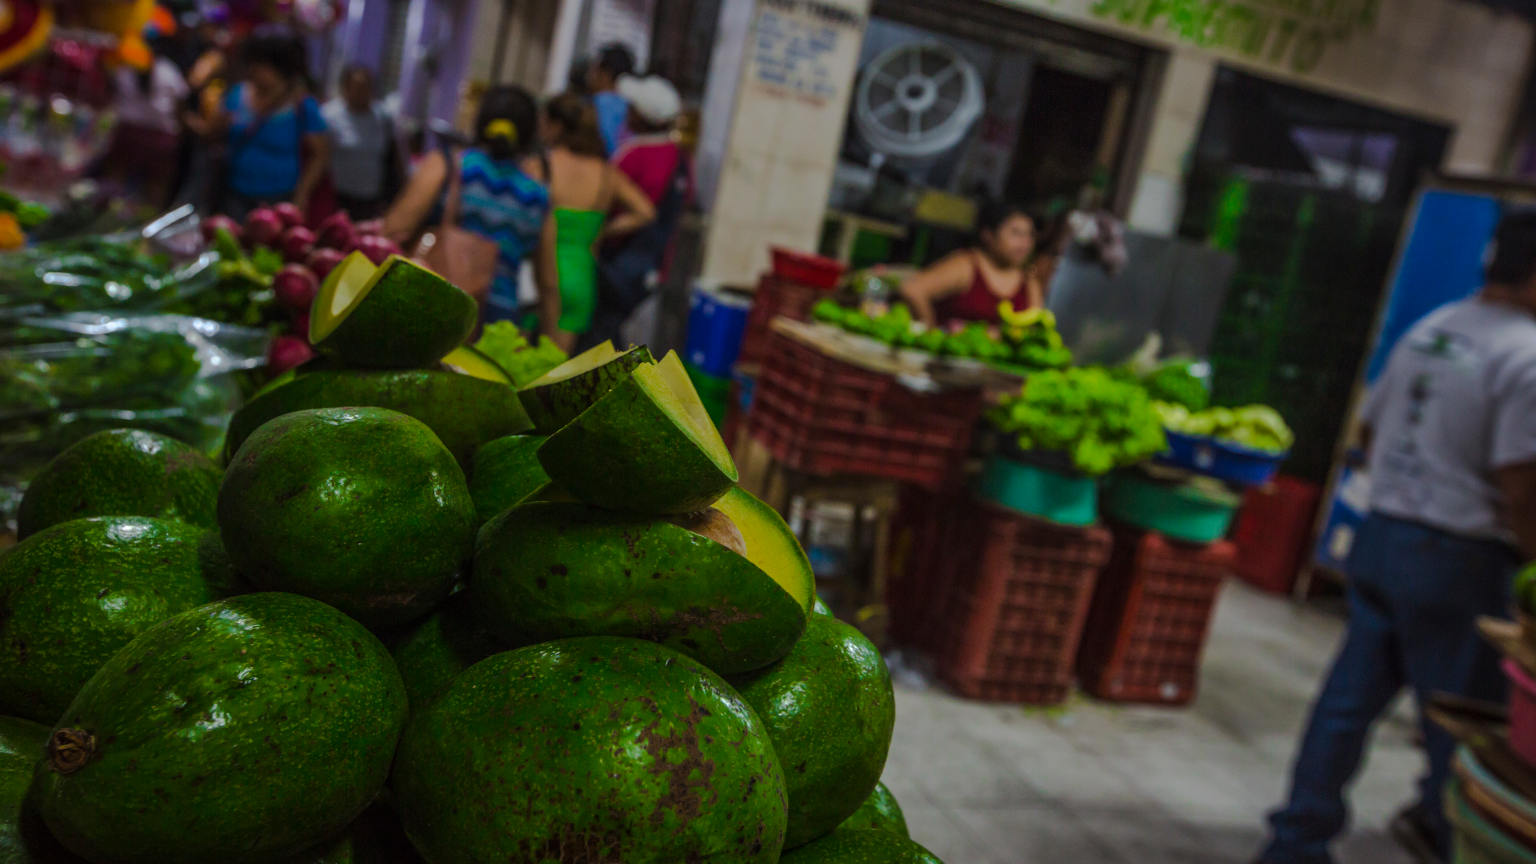 Mexico-Merida-Food-Market-Avocados-Oana-Dragan